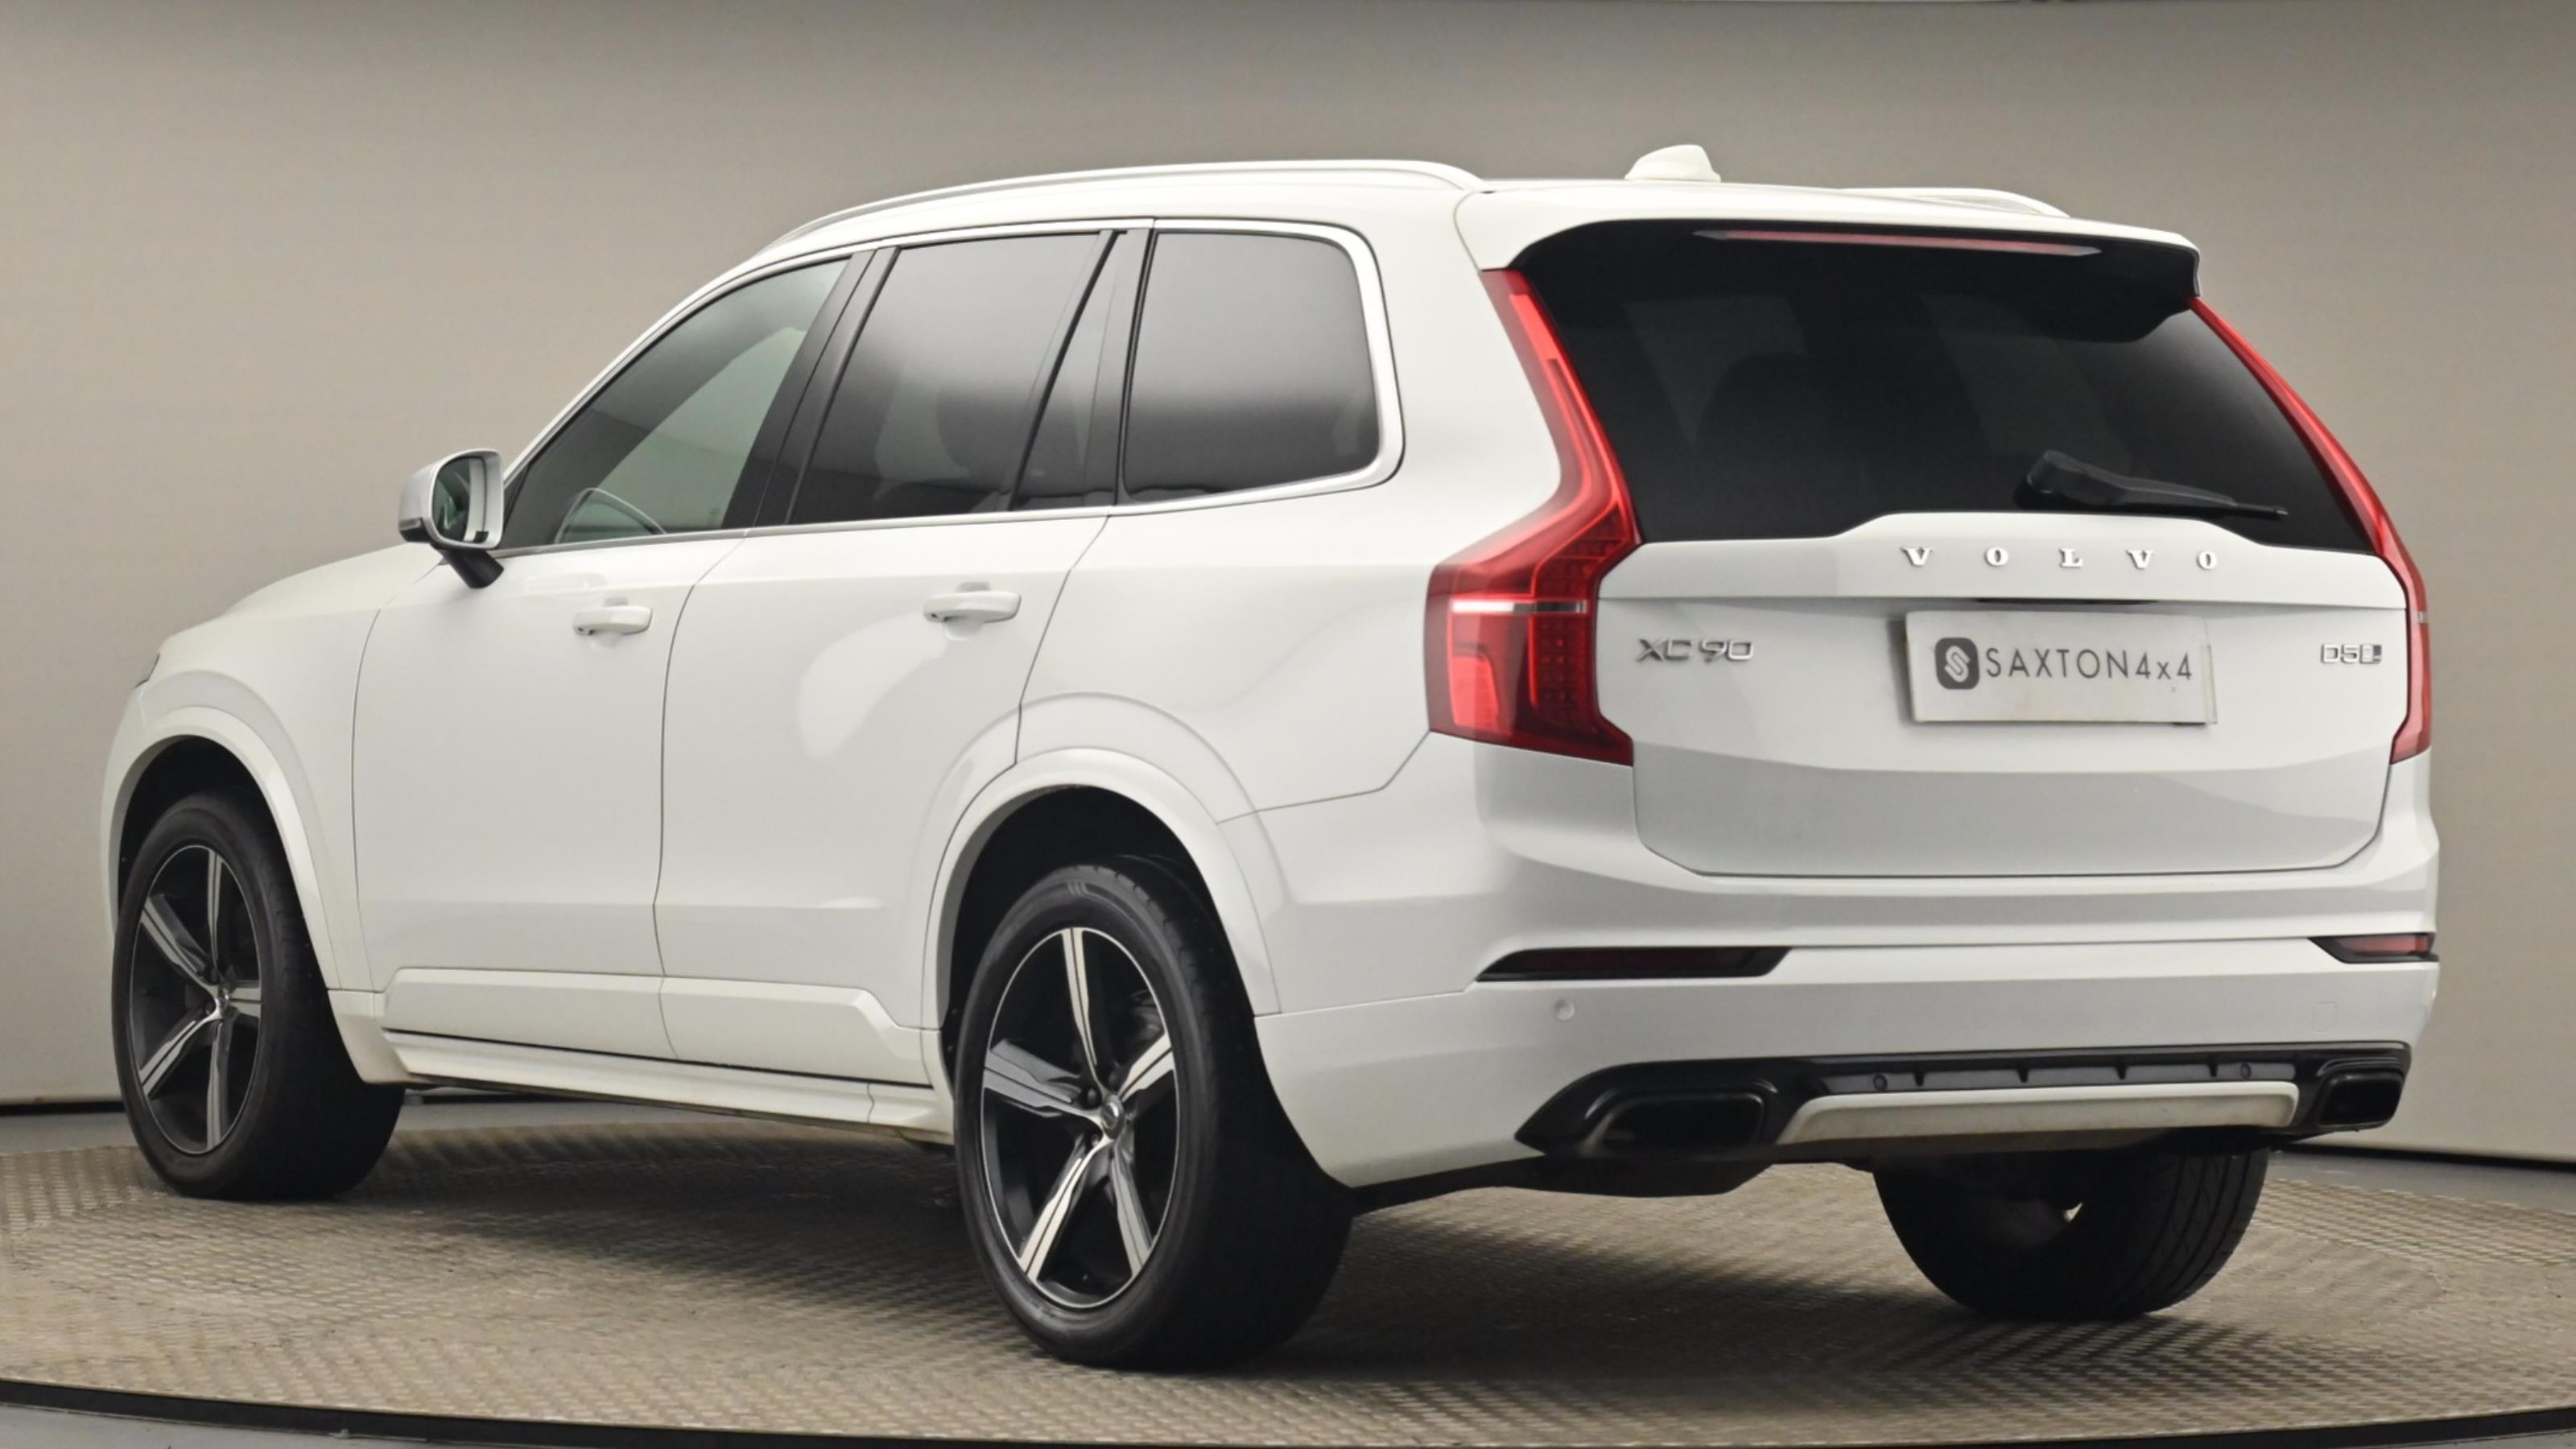 Used 2016 Volvo XC90 2.0 D5 PowerPulse R DESIGN 5dr AWD Geartronic WHITE at Saxton4x4